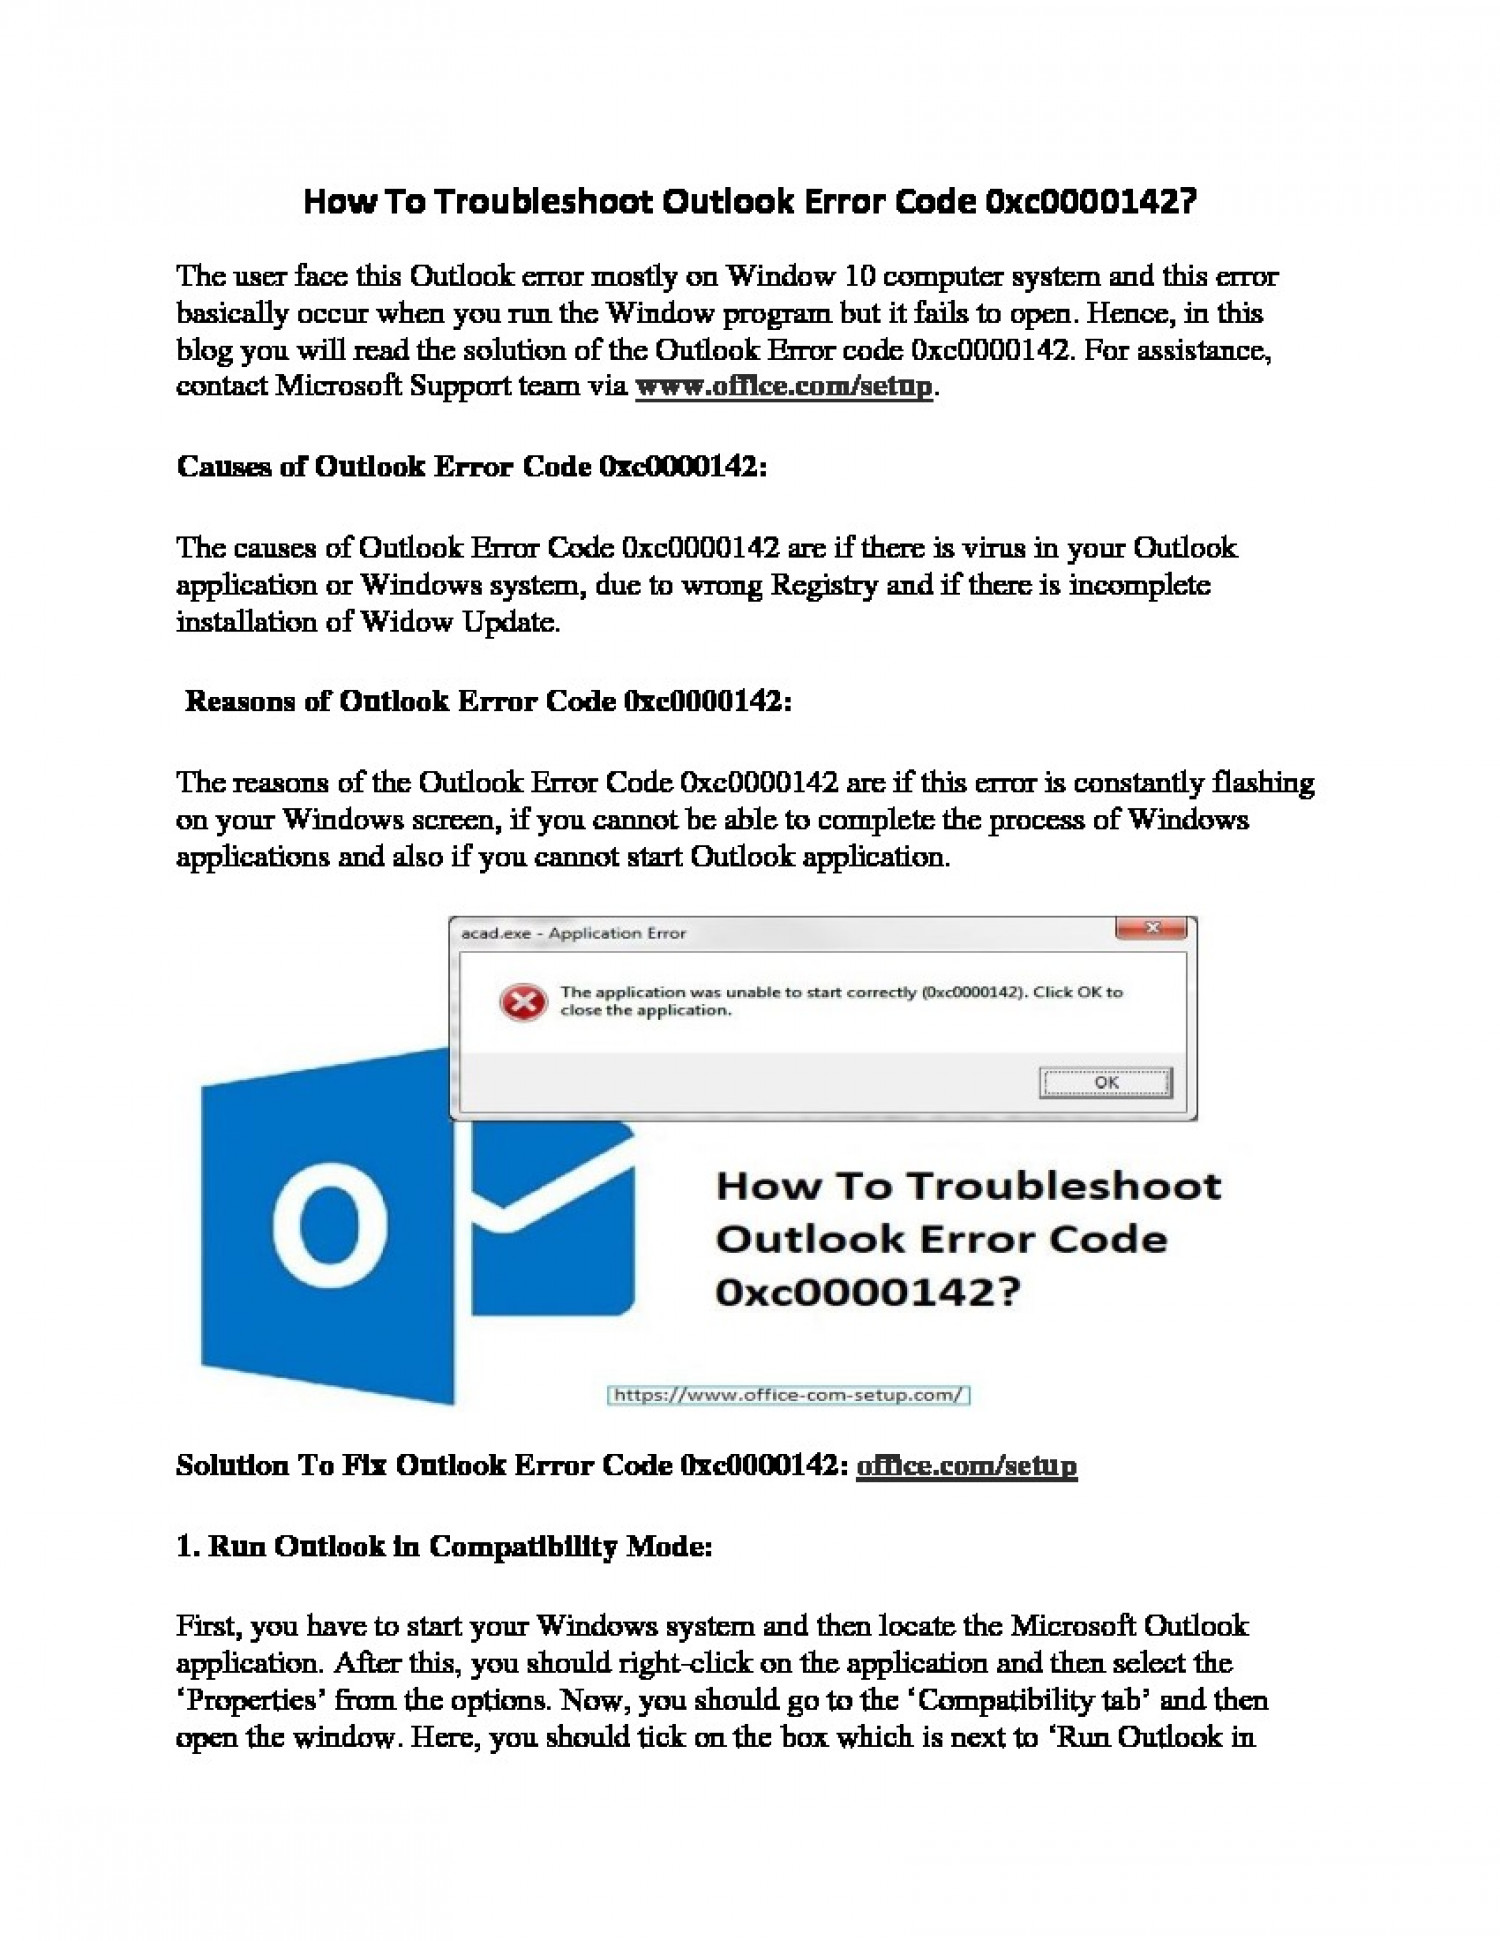 How To Troubleshoot Outlook Error Code 0xc0000142? Infographic